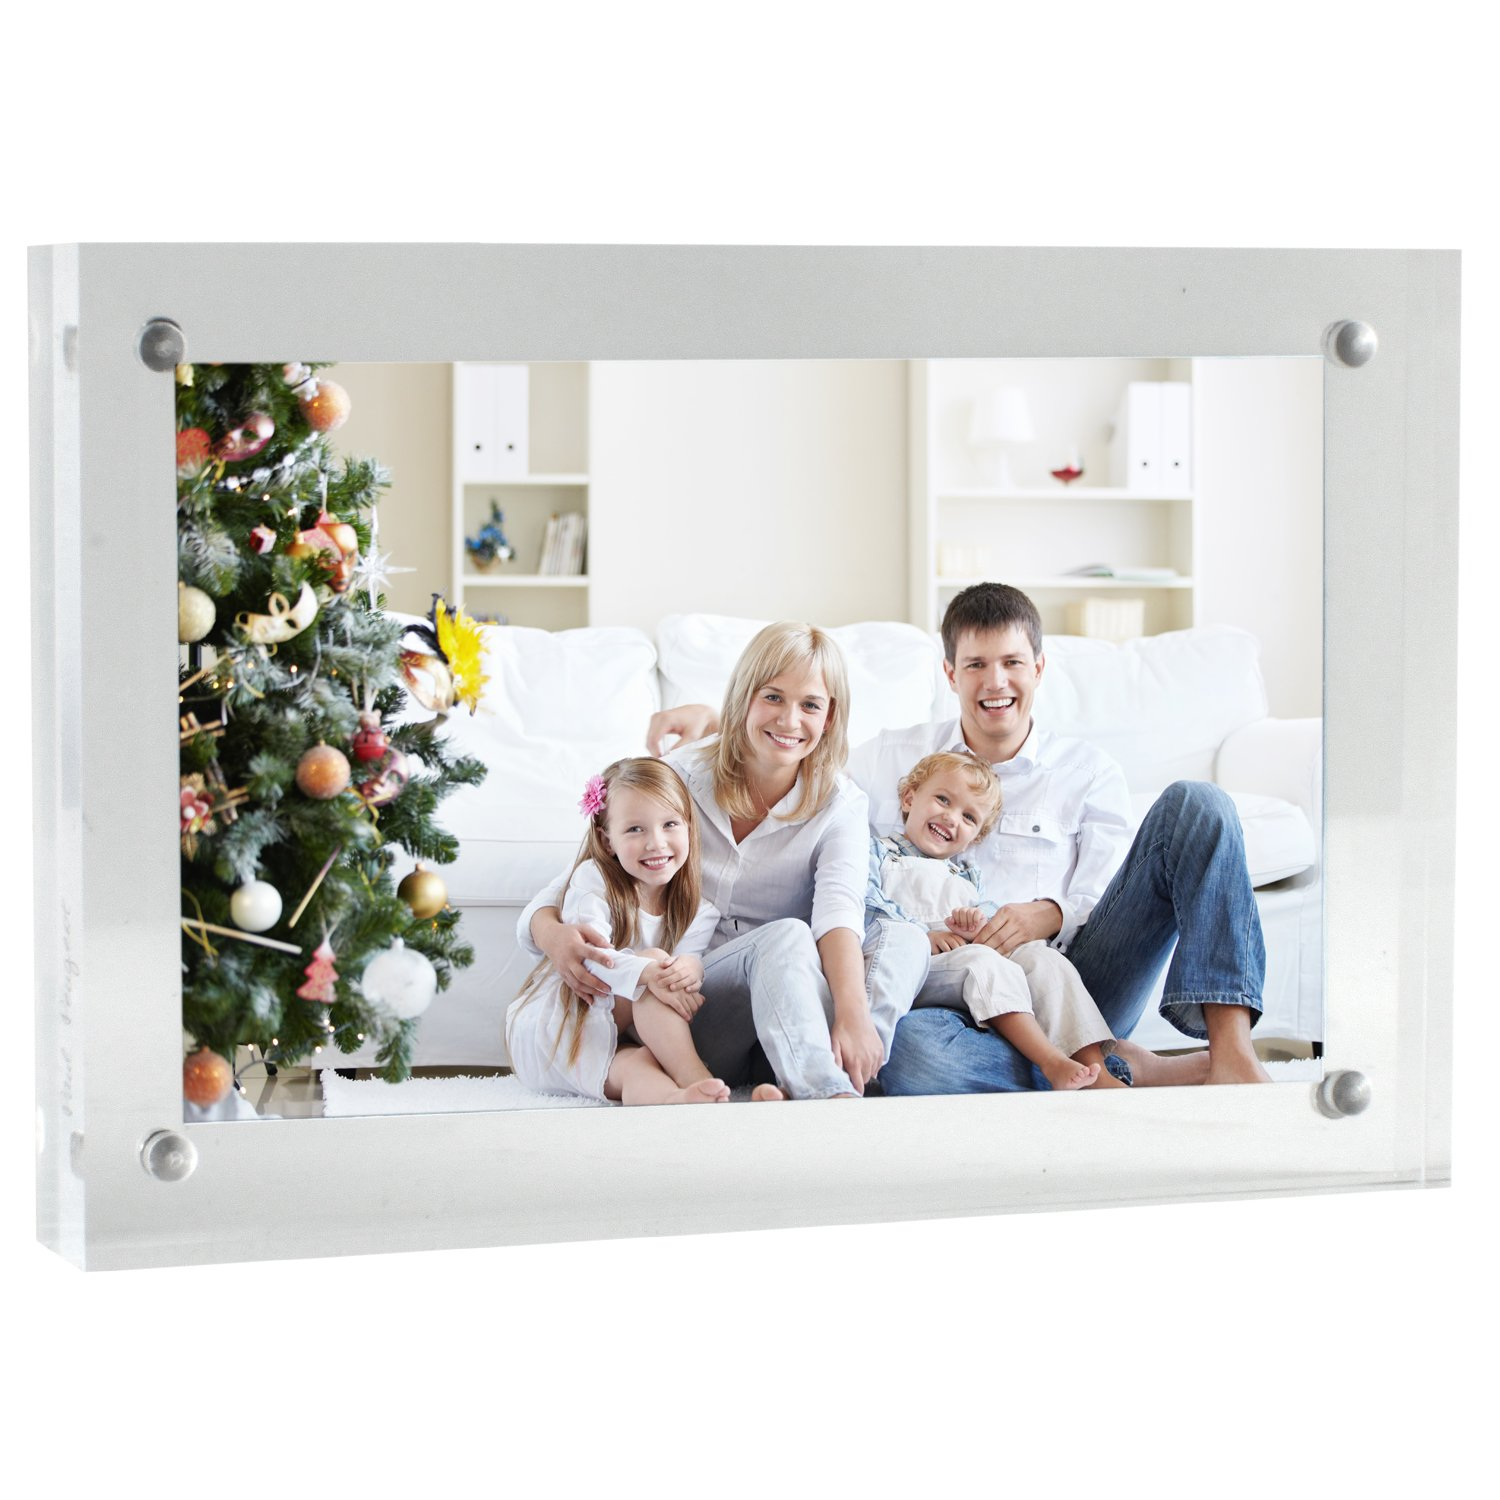 Paul Peugeot Premium Quality 4x6 Acrylic Picture Frame With 4 Corner Magnetic Magnet Lock Closure, Ultra Thick, 20mm Total Thickness PH46